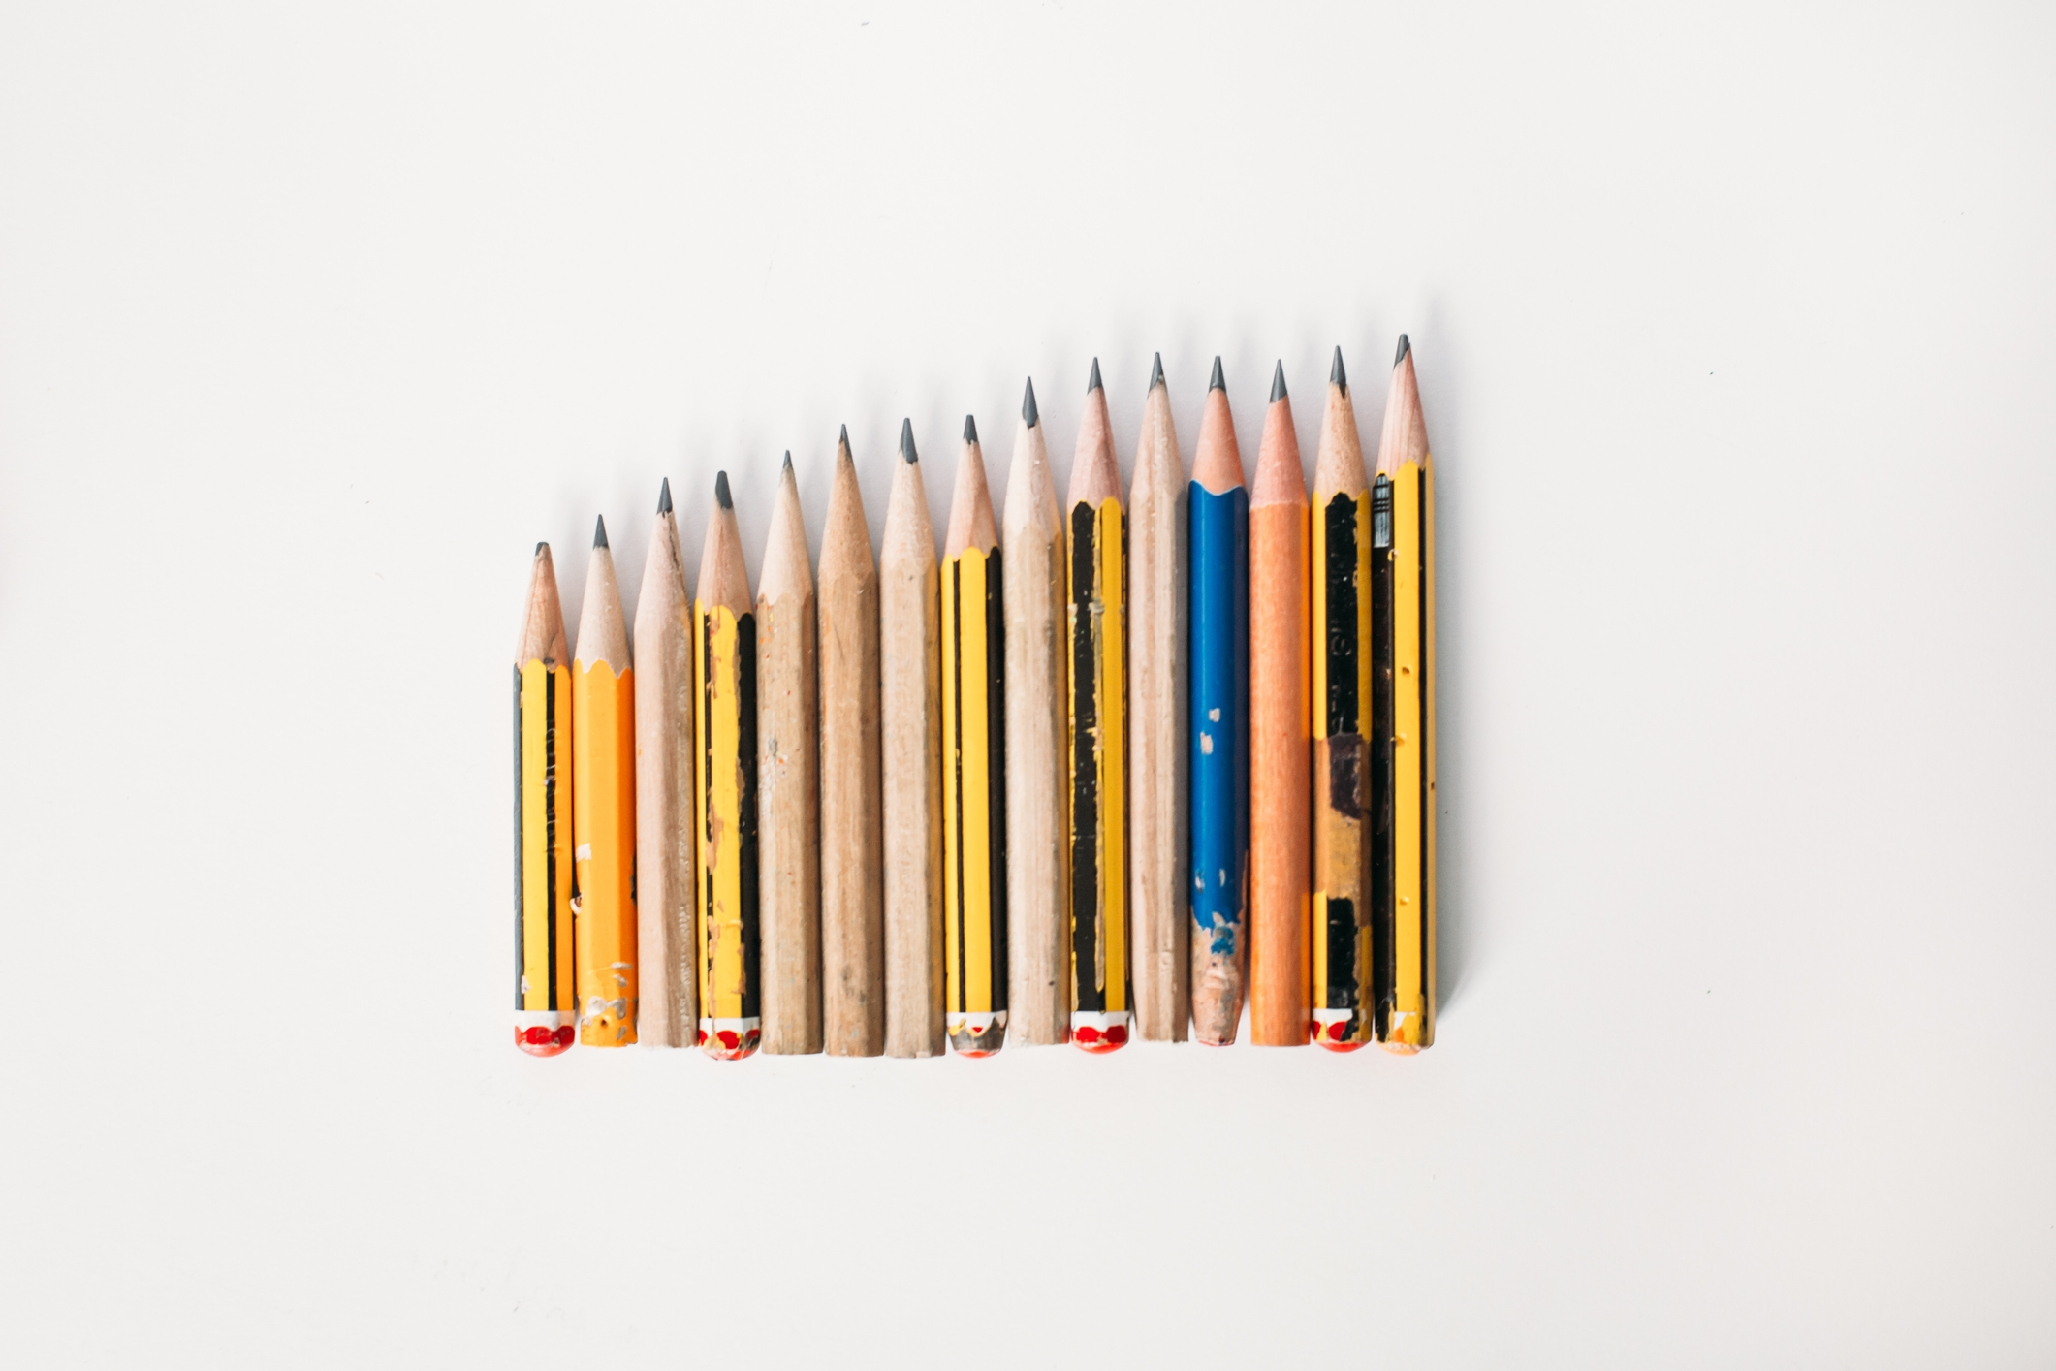 Photo of pencils lined up